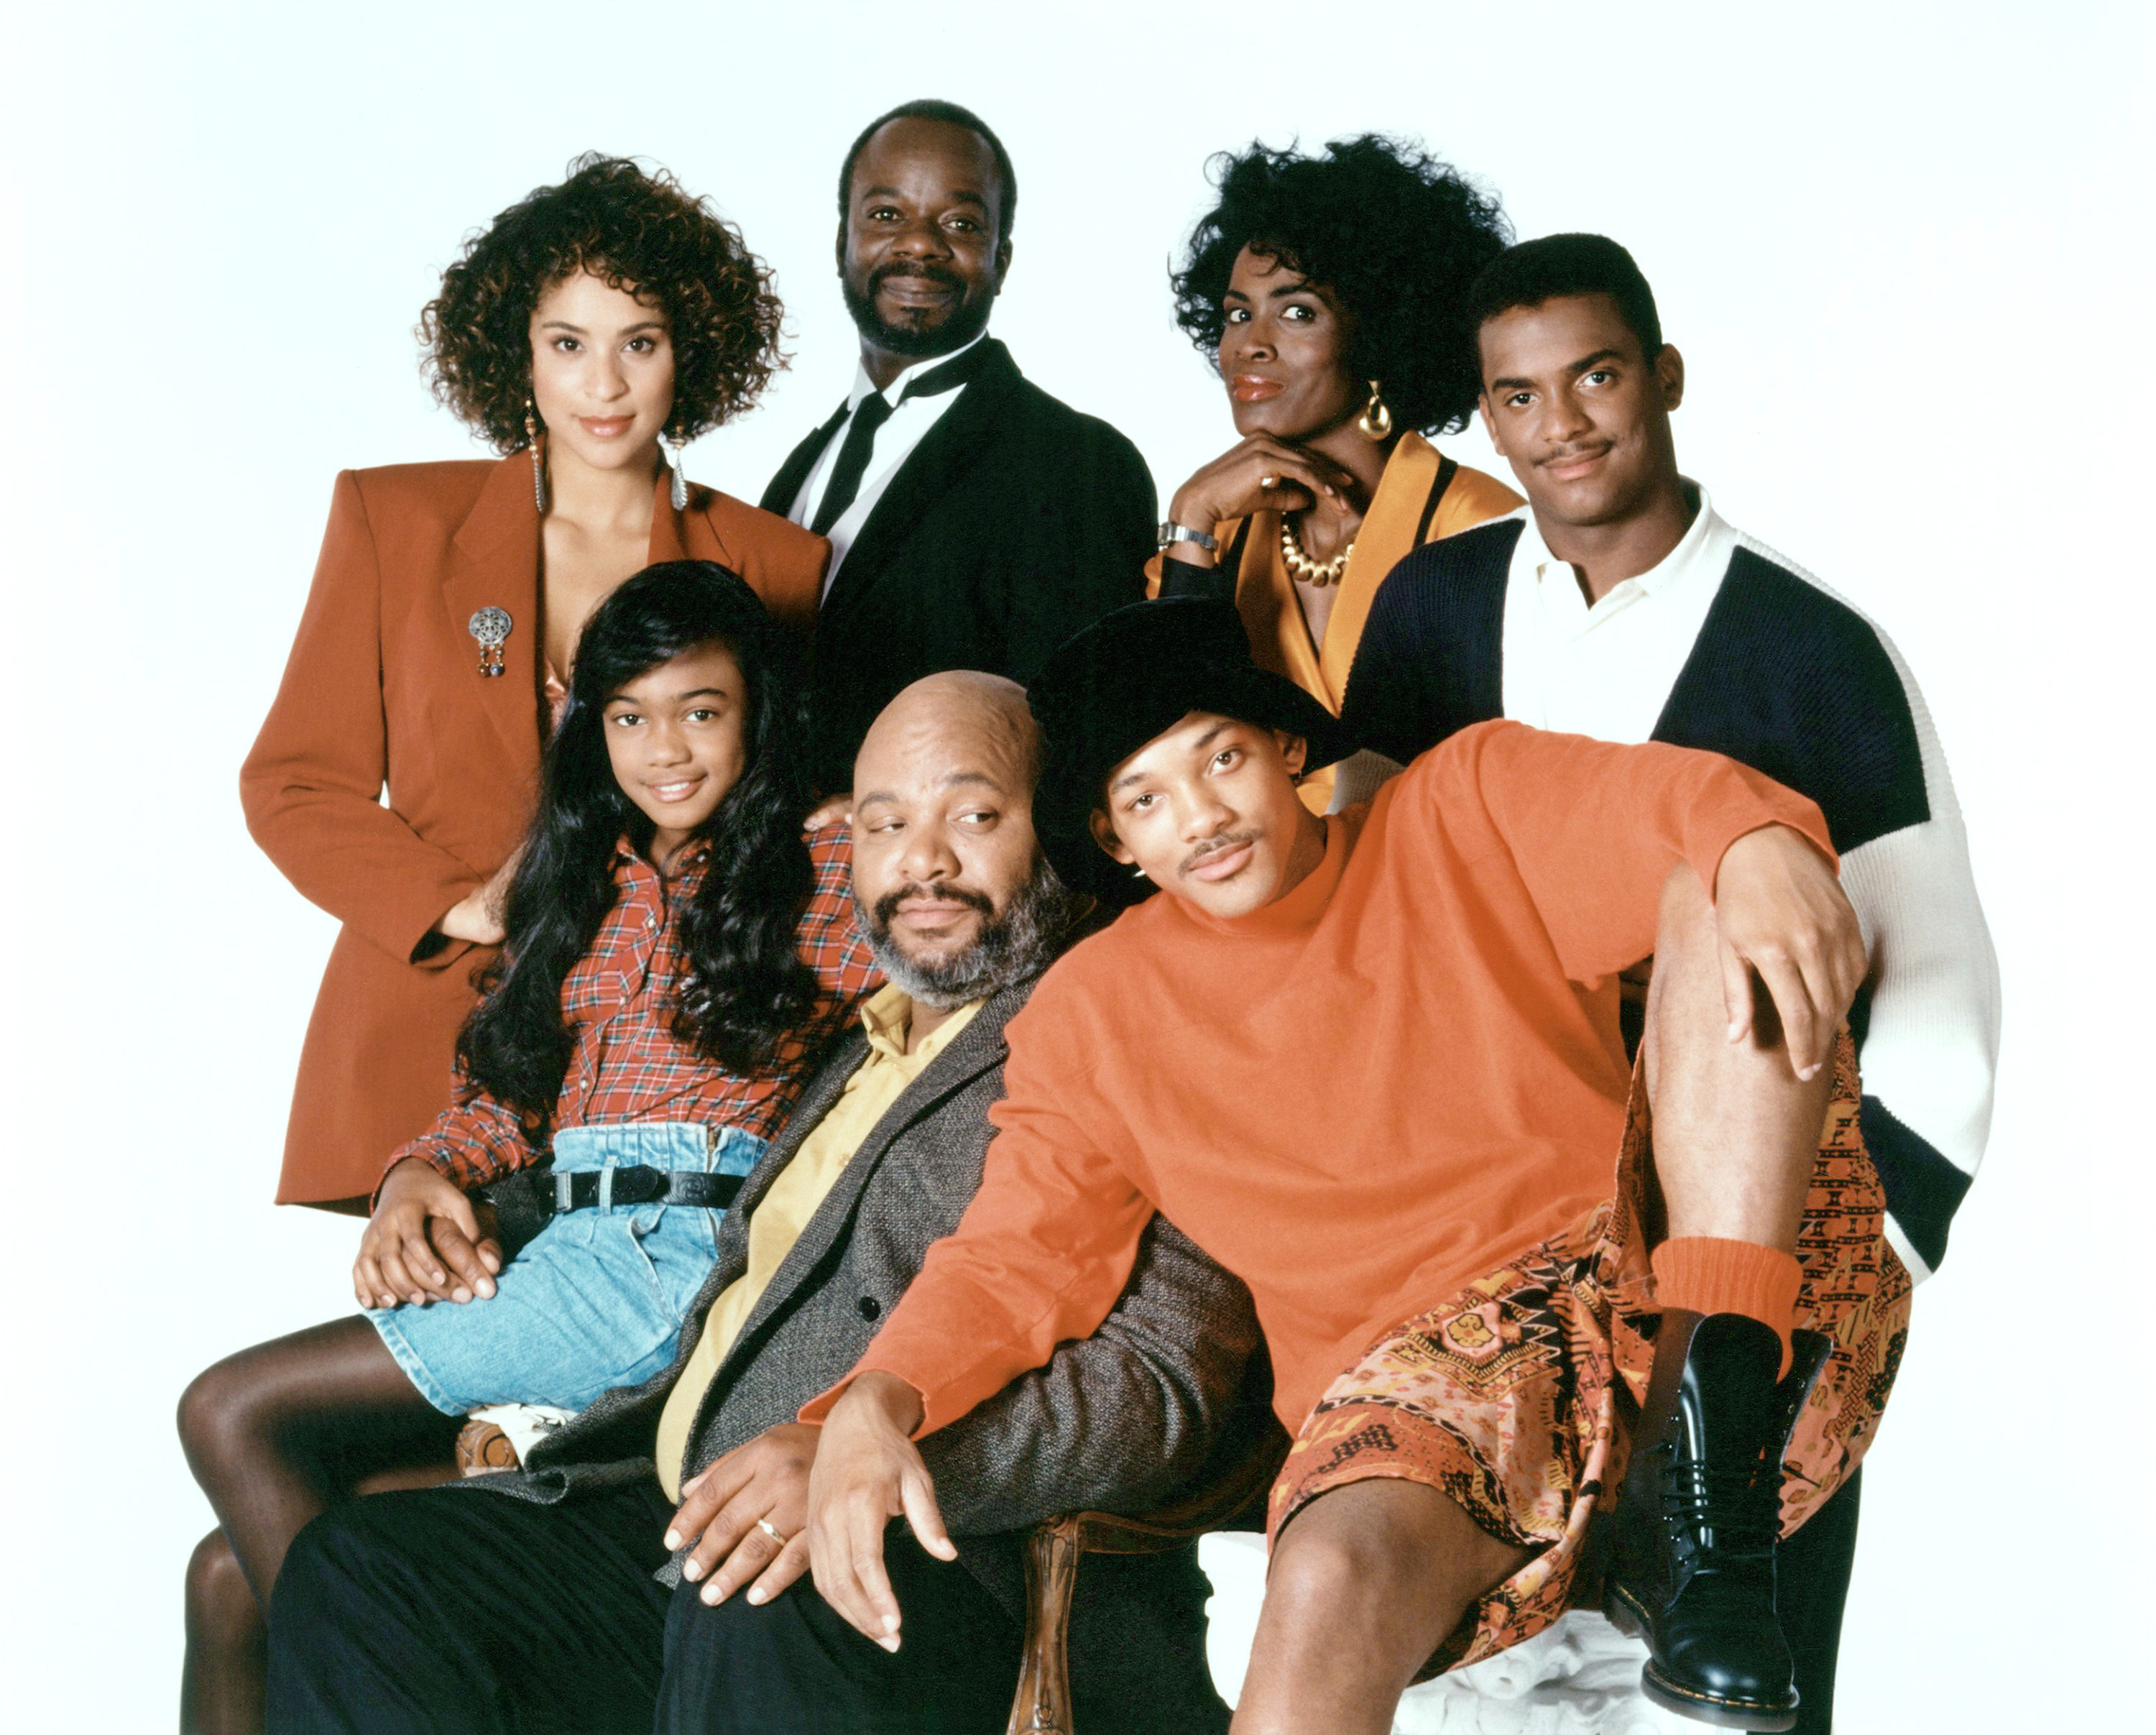 The original cast of 'The Fresh Prince of Bel-Air' (Photo: NBC/ Courtesy: Everett Collection)